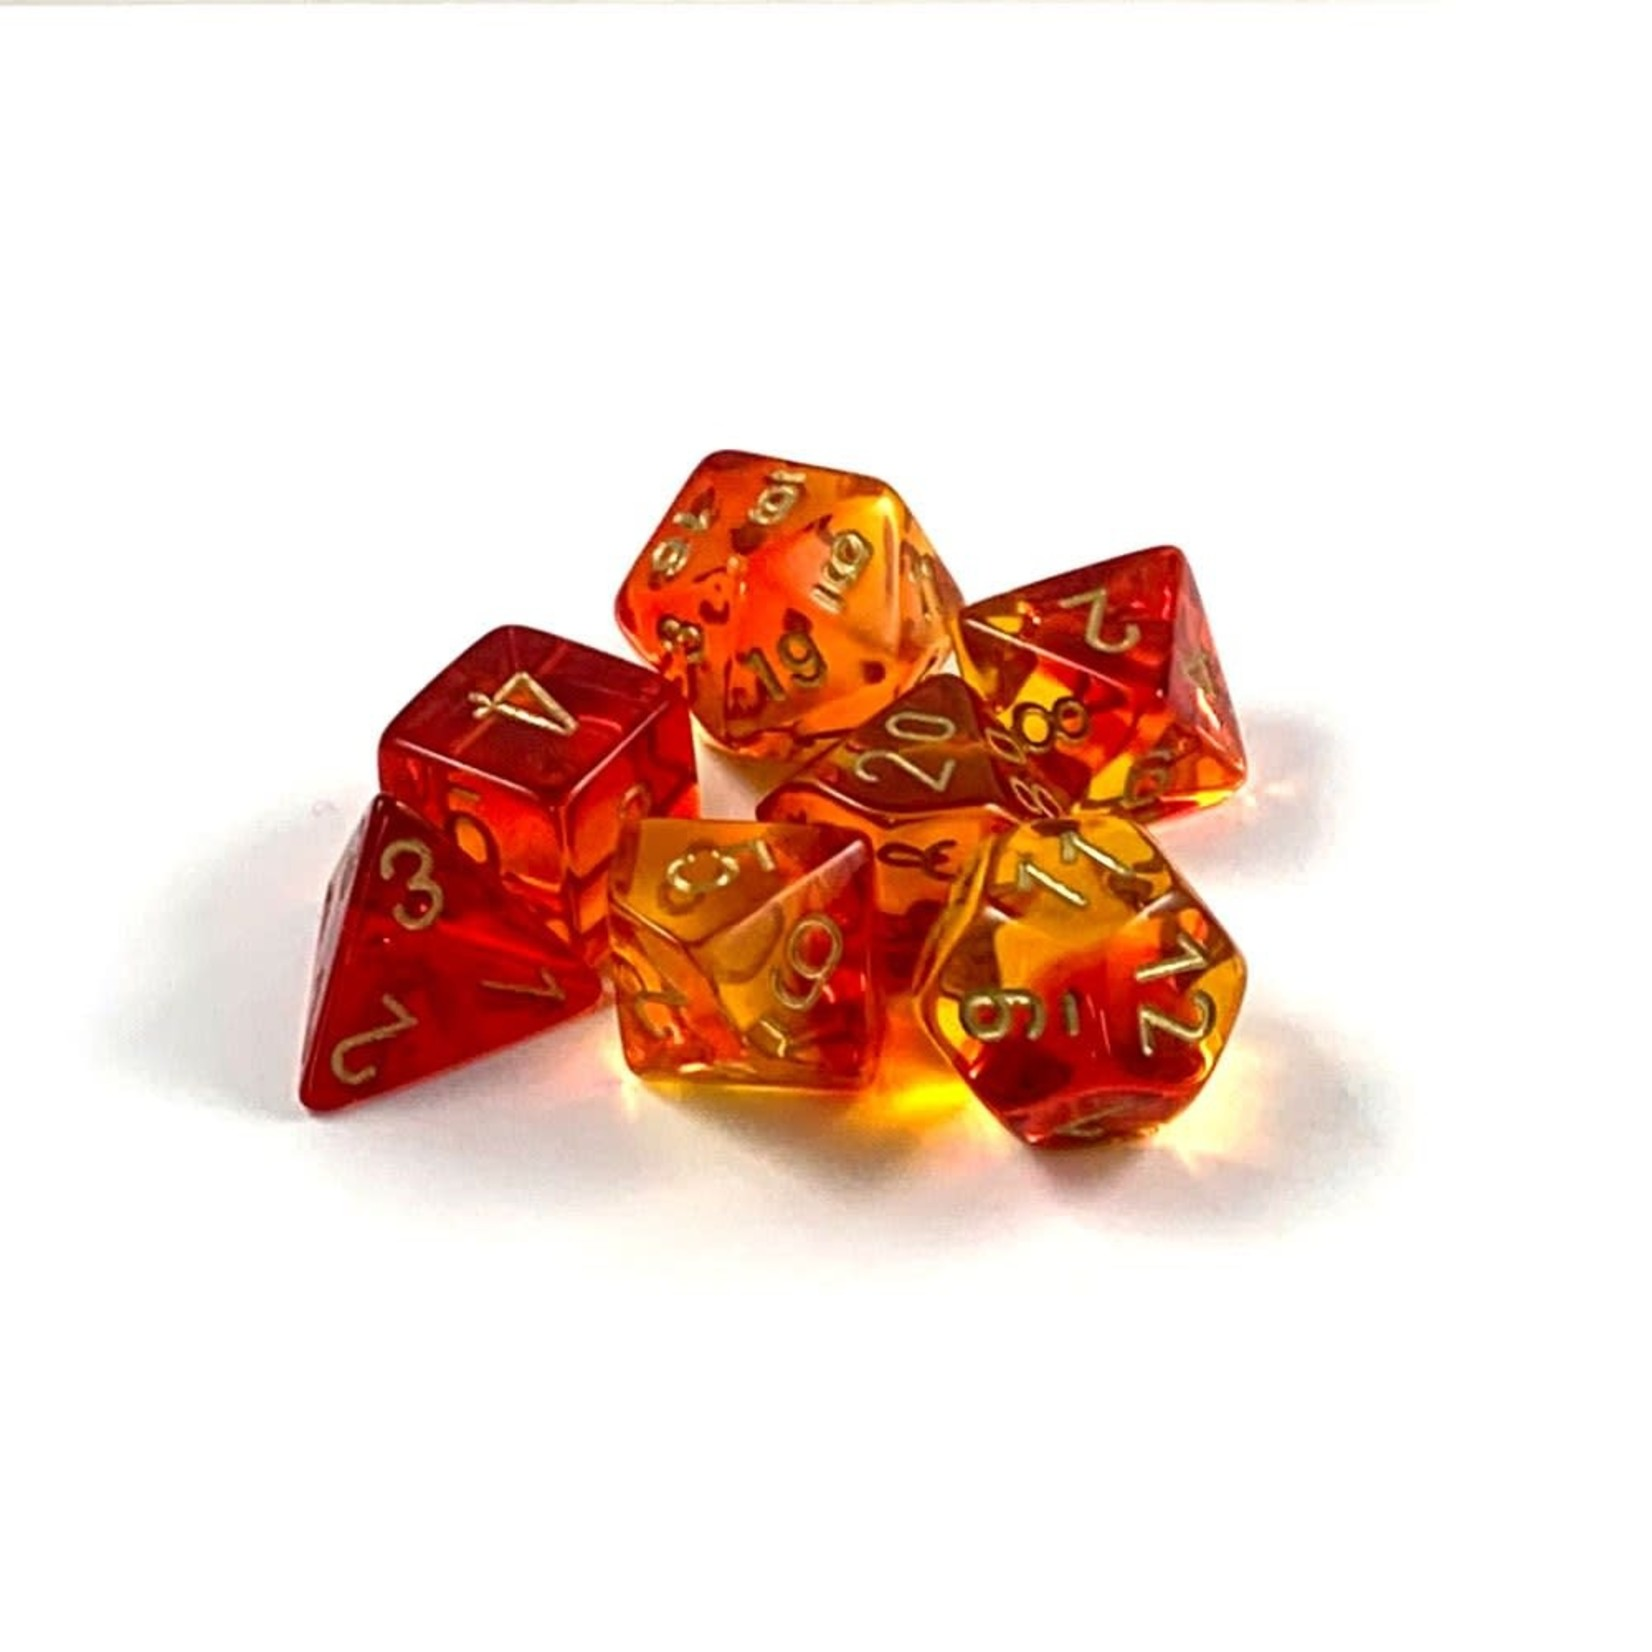 Chessex Gemini Translucent Polyhedral Red-Yellow/gold 7-Die Set